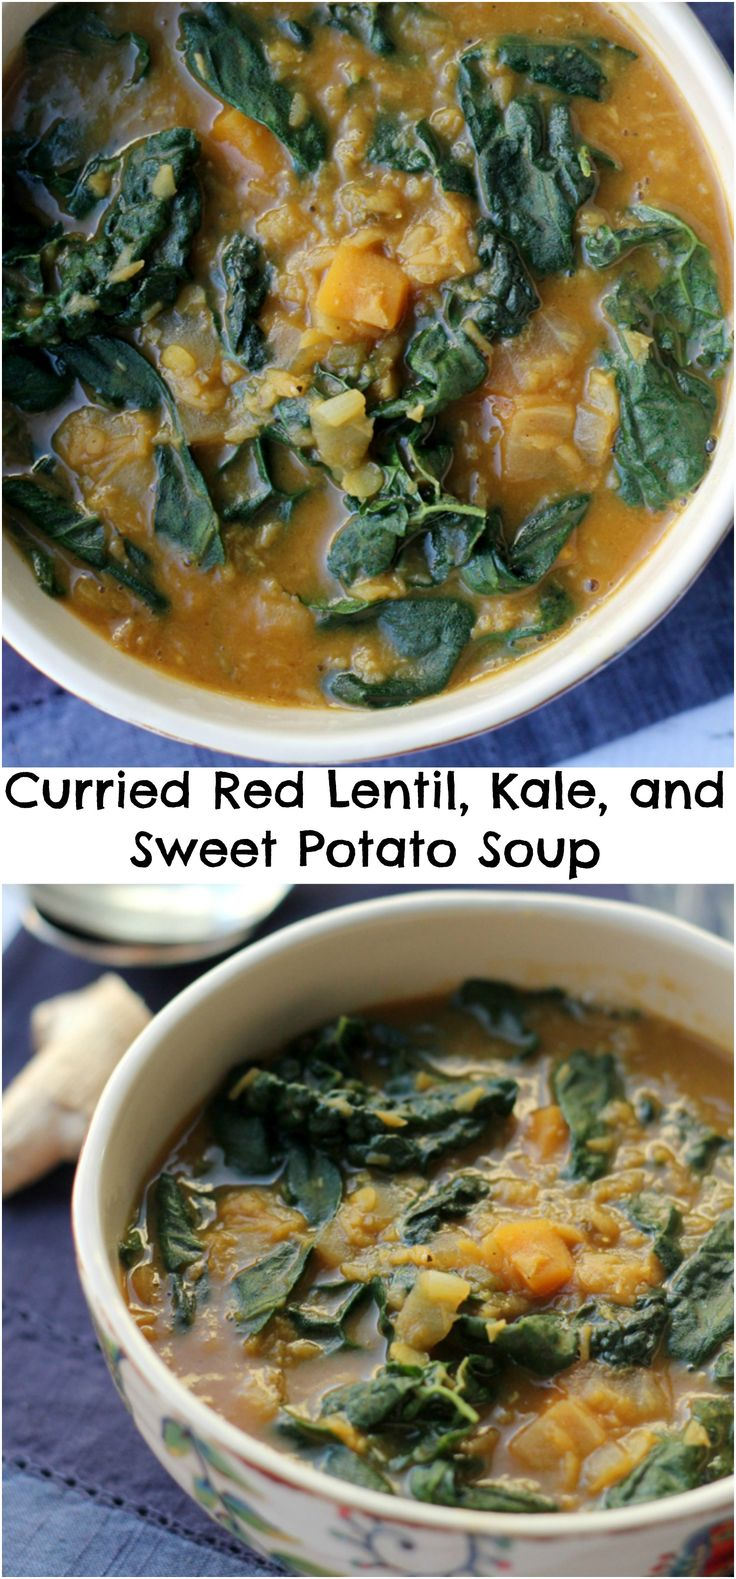 This curried red lentil, kale and sweet potato soup is the perfect way to warm up from the cold snowy outsides. It is full of rich, warm spices, sweet potatoes, and lentils for the ultimate satisfaction.